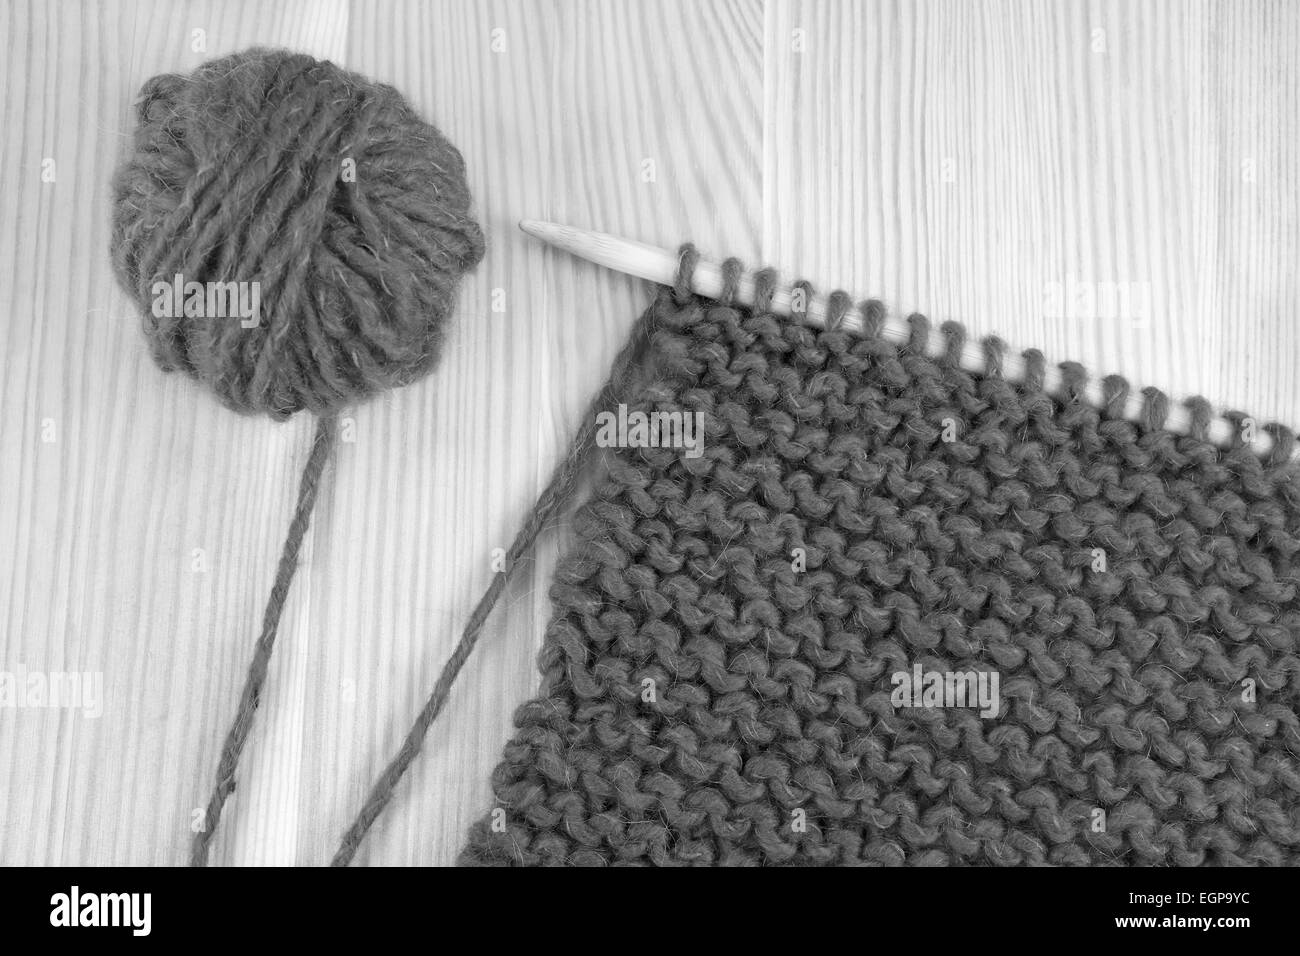 Ball of wool and garter stitch on a knitting needle - monochrome processing - Stock Image